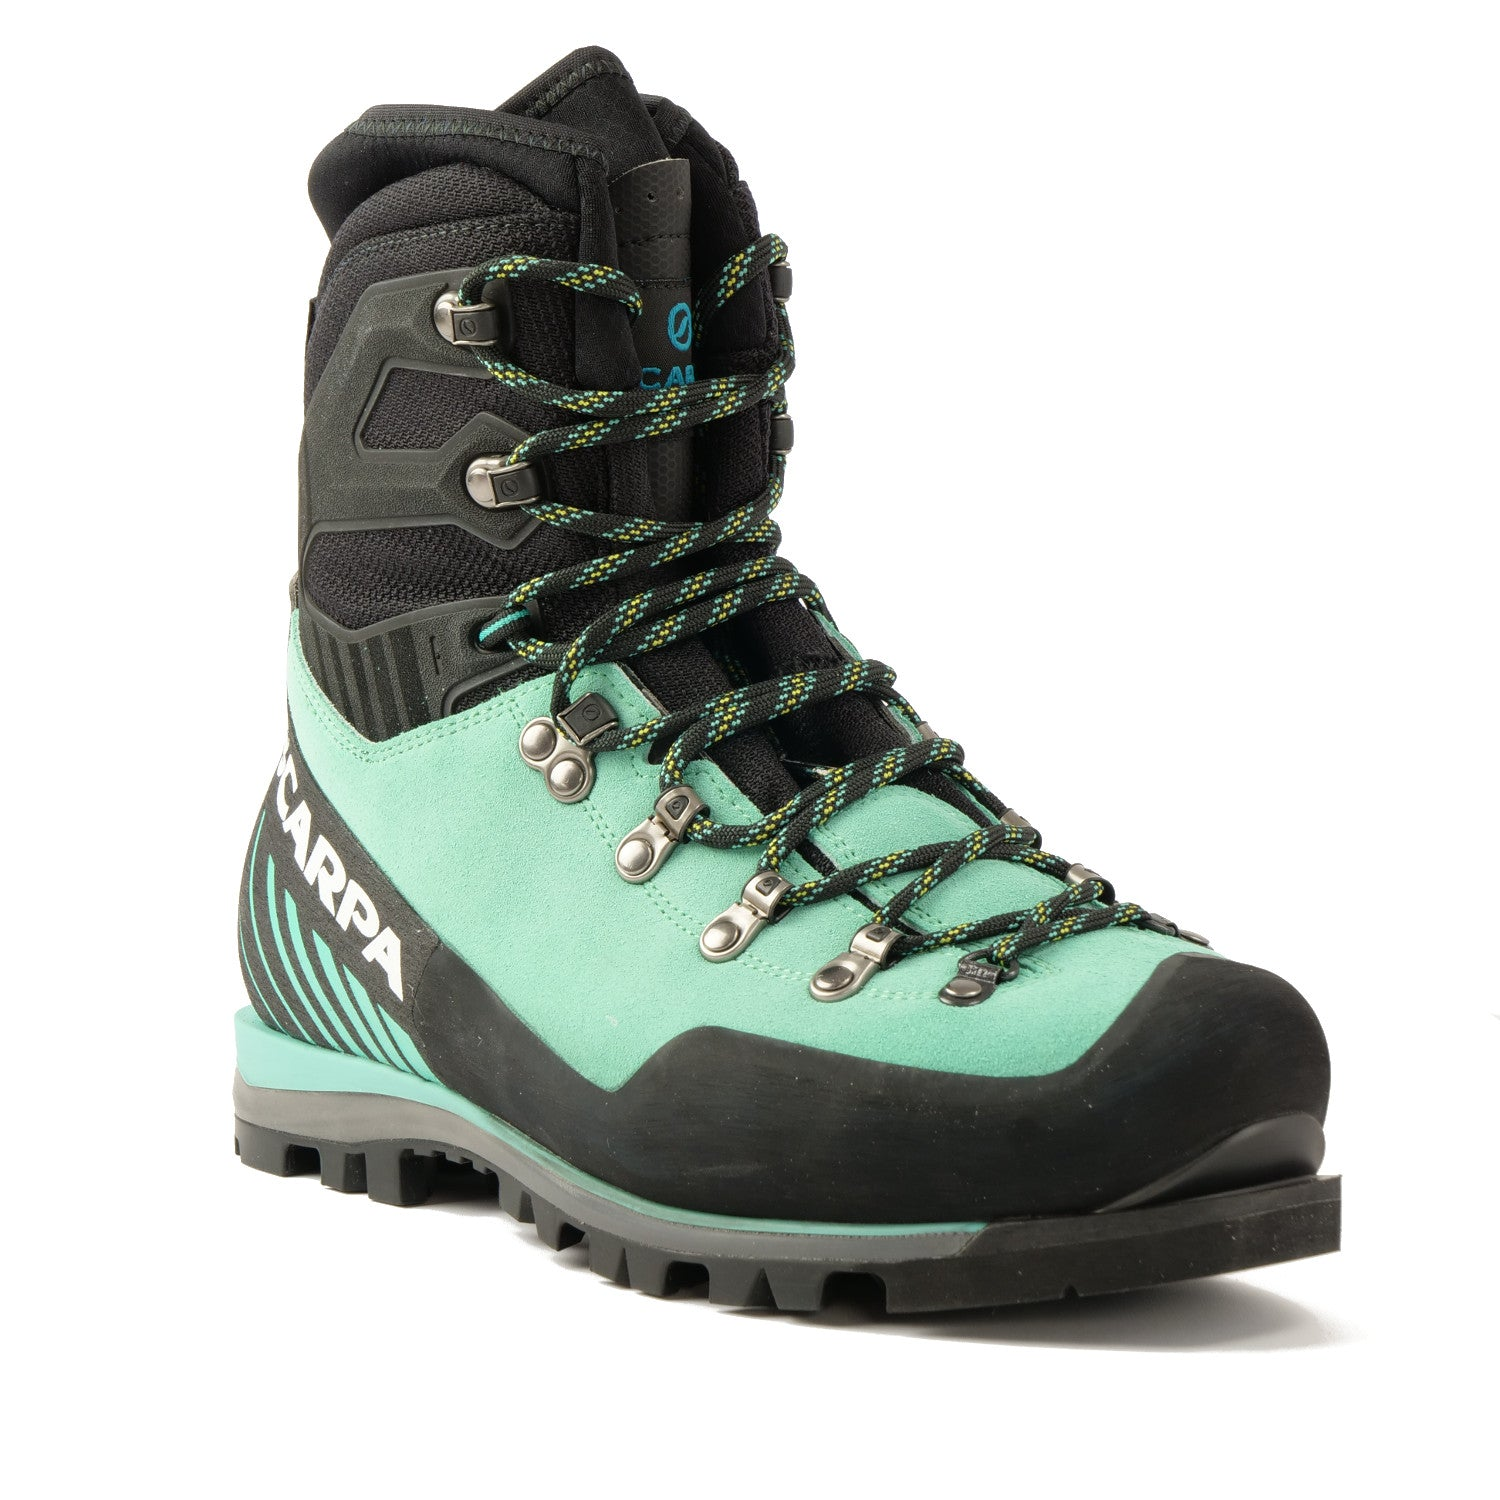 Front view of the Scarpa Mont Blanc Pro GTX Womens with Mint Green Perwanger outer and black rubber and flexible sock and tongue